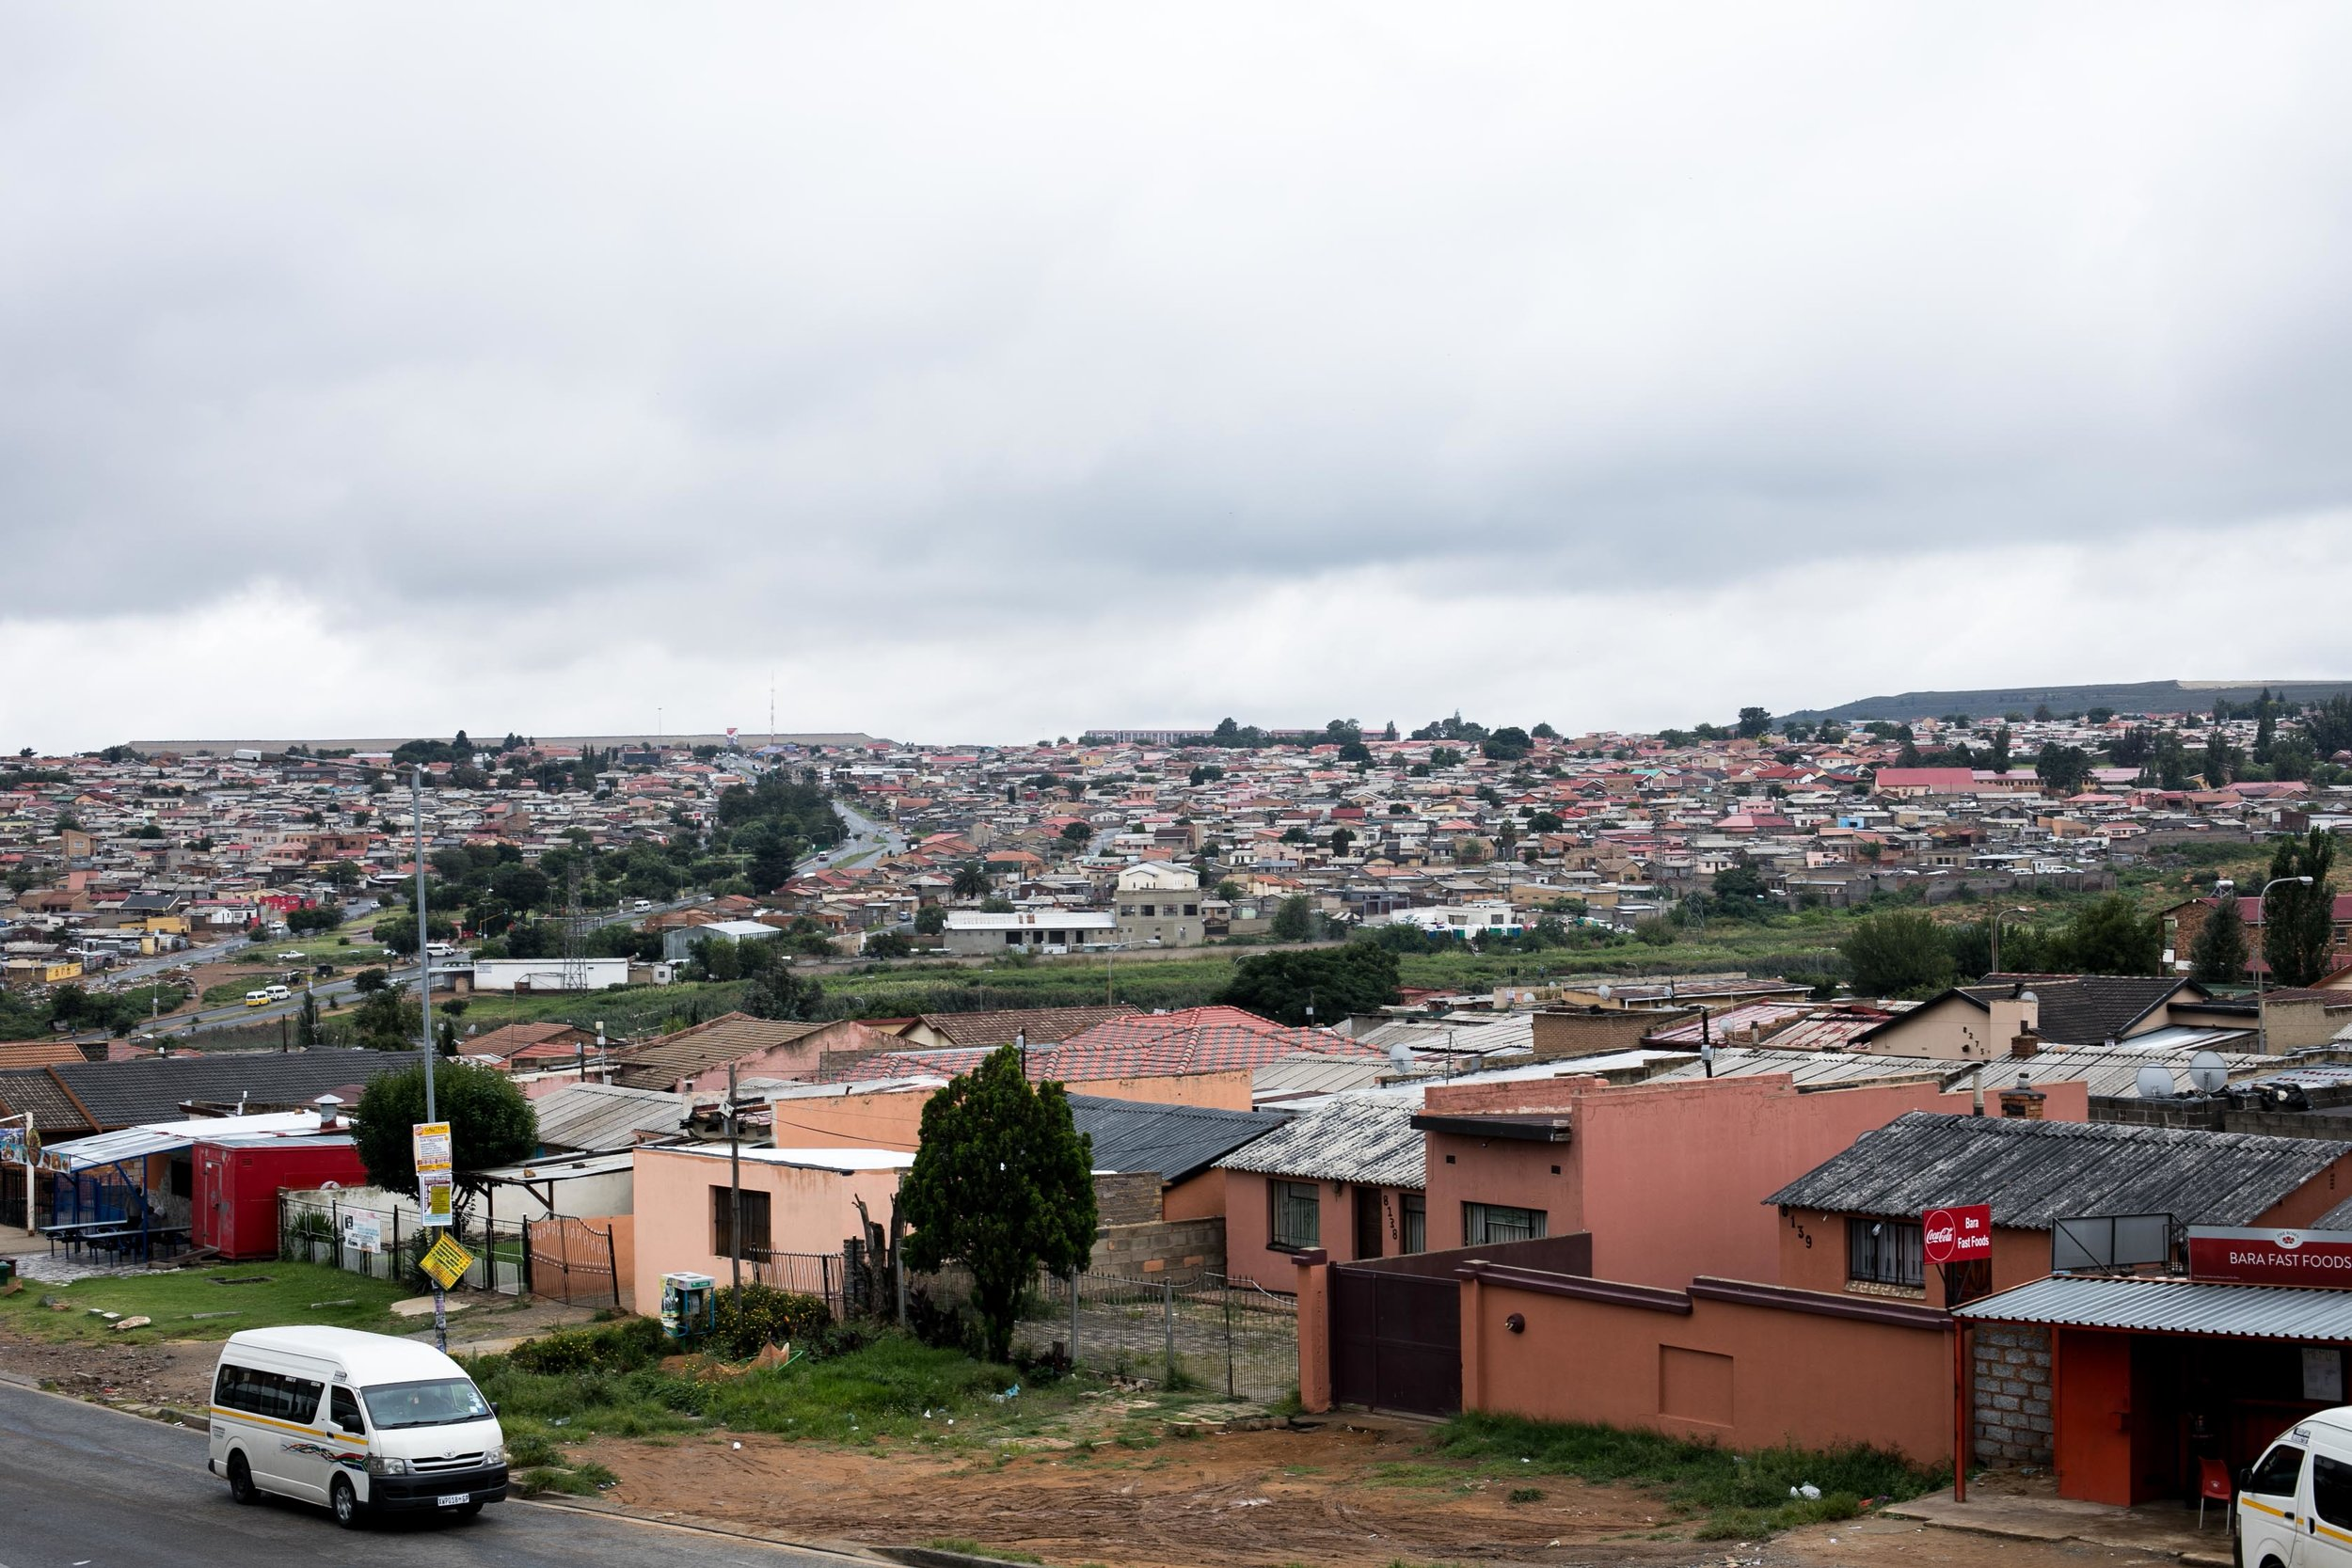 An overhead view of Soweto, an almost exclusively black township in Johannesburg, South Africa. Townships were created under the apartheid era and specifically designated for black residents.